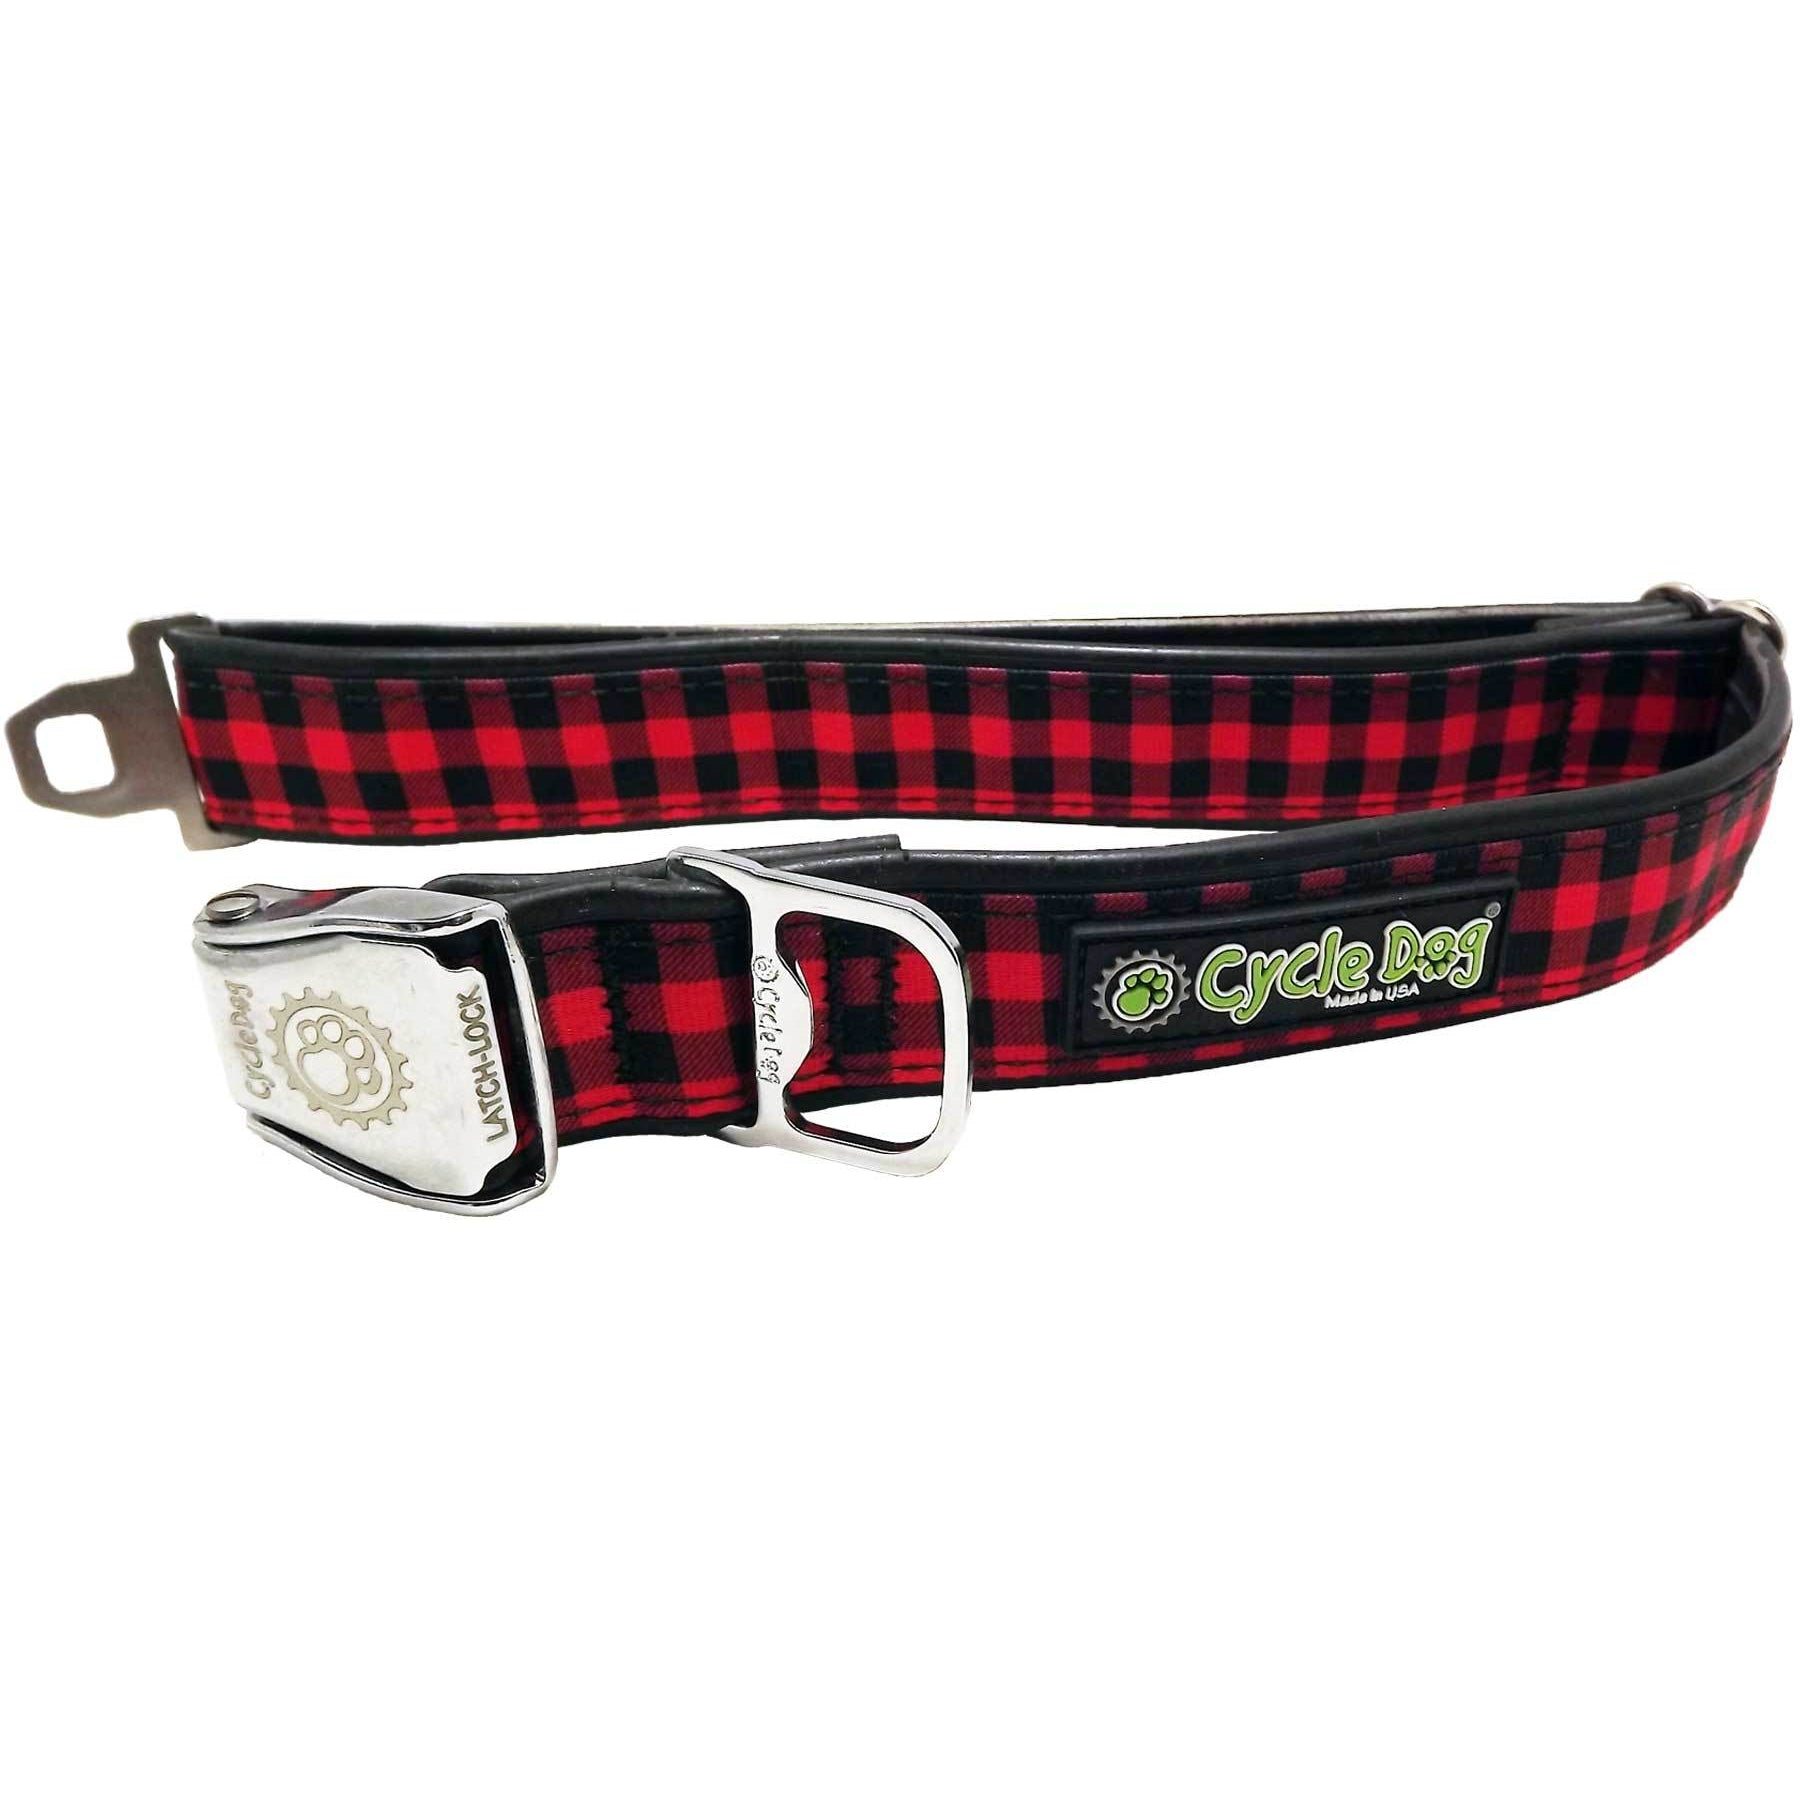 Cycle Dog Red Plaid Dog Collar